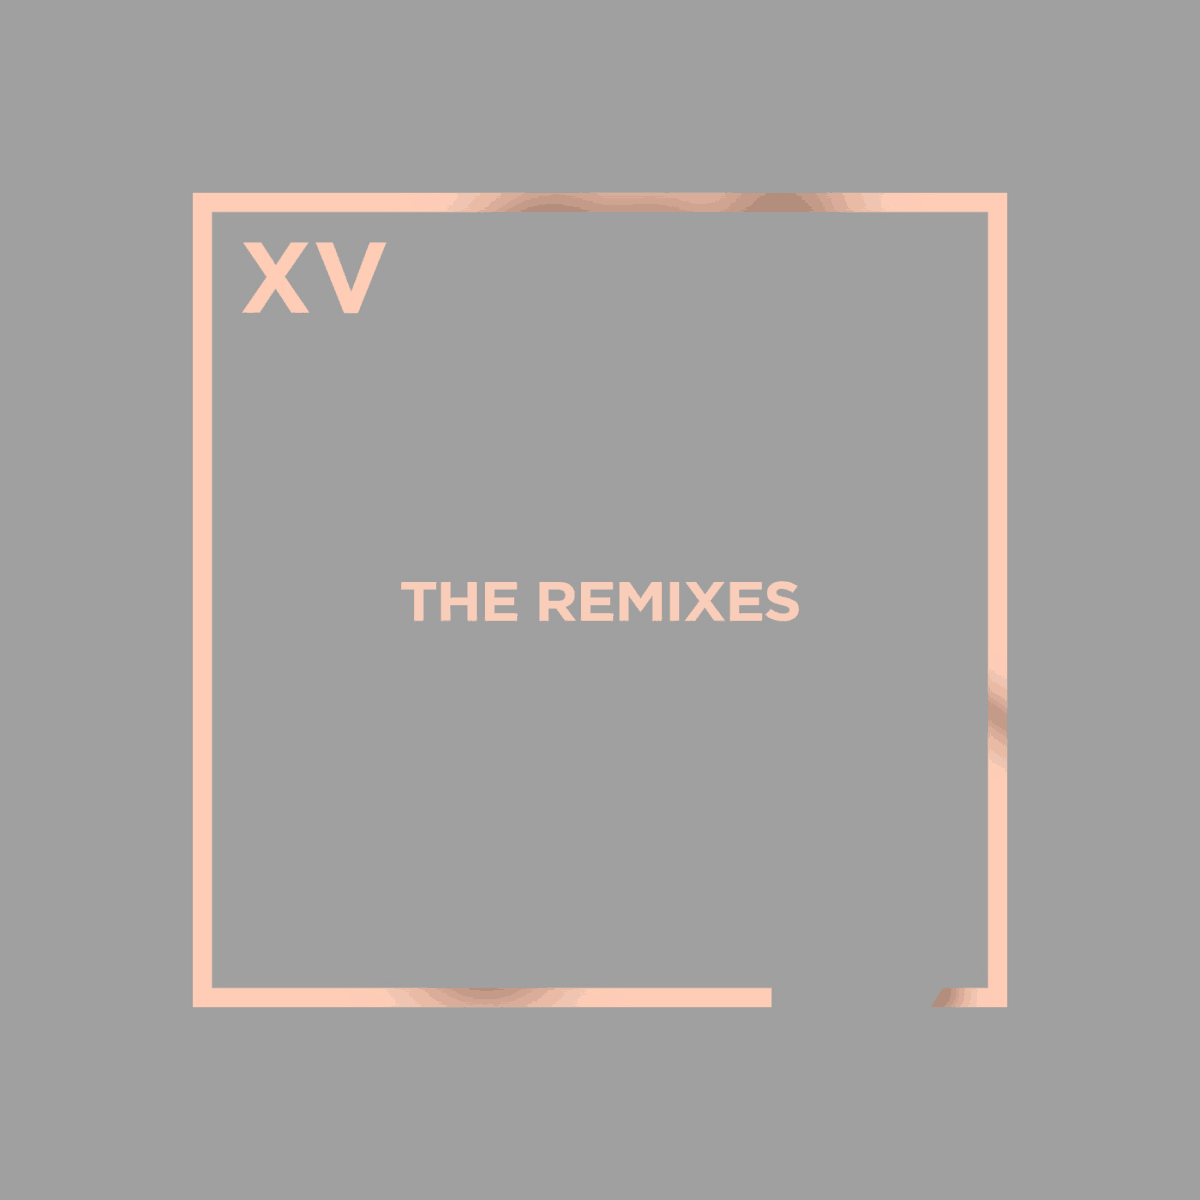 Dirty South releases XV: The Remixes